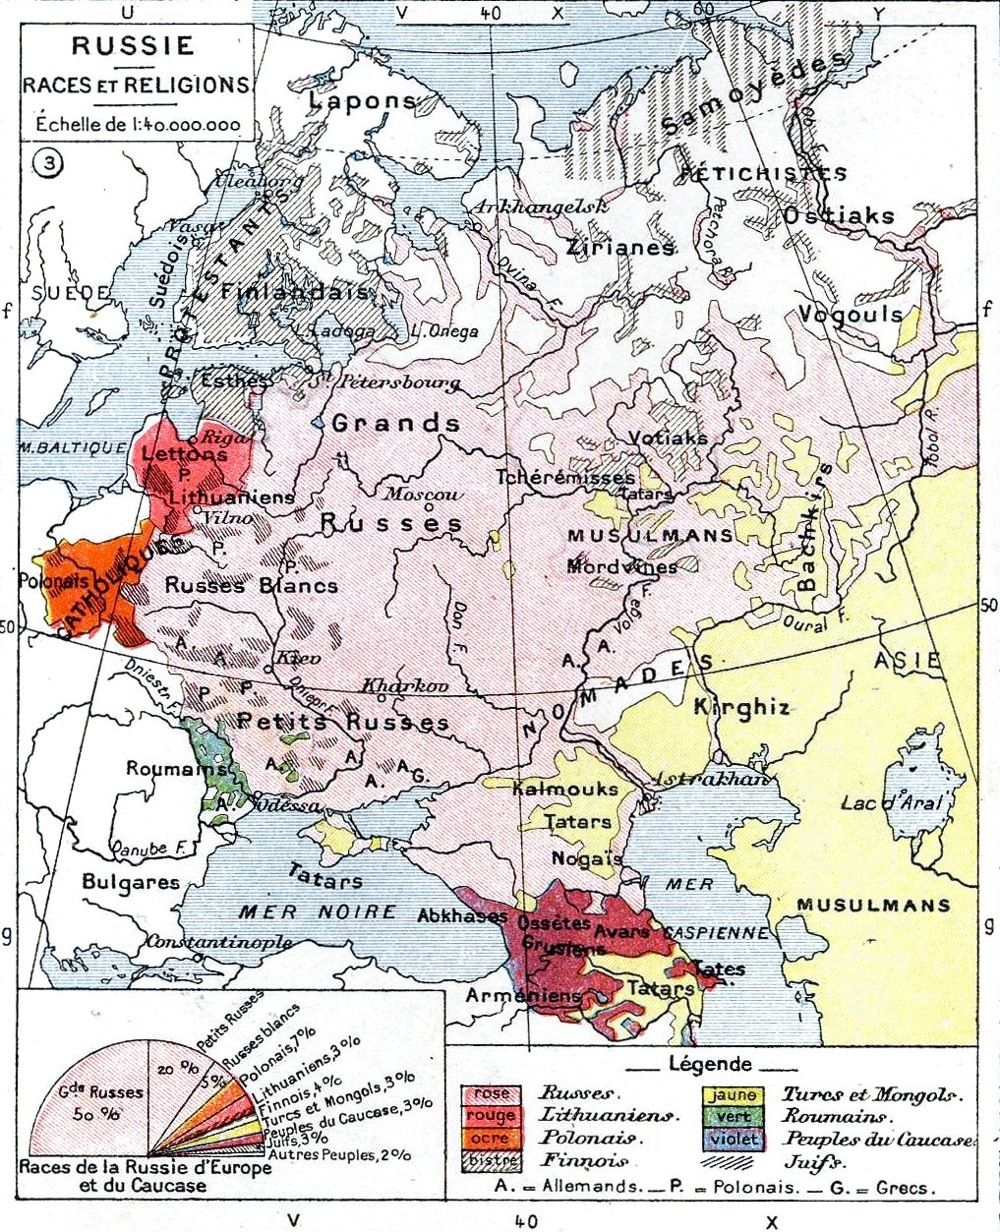 Map of Russia Races and Religions | I love maps! | Pinterest ...